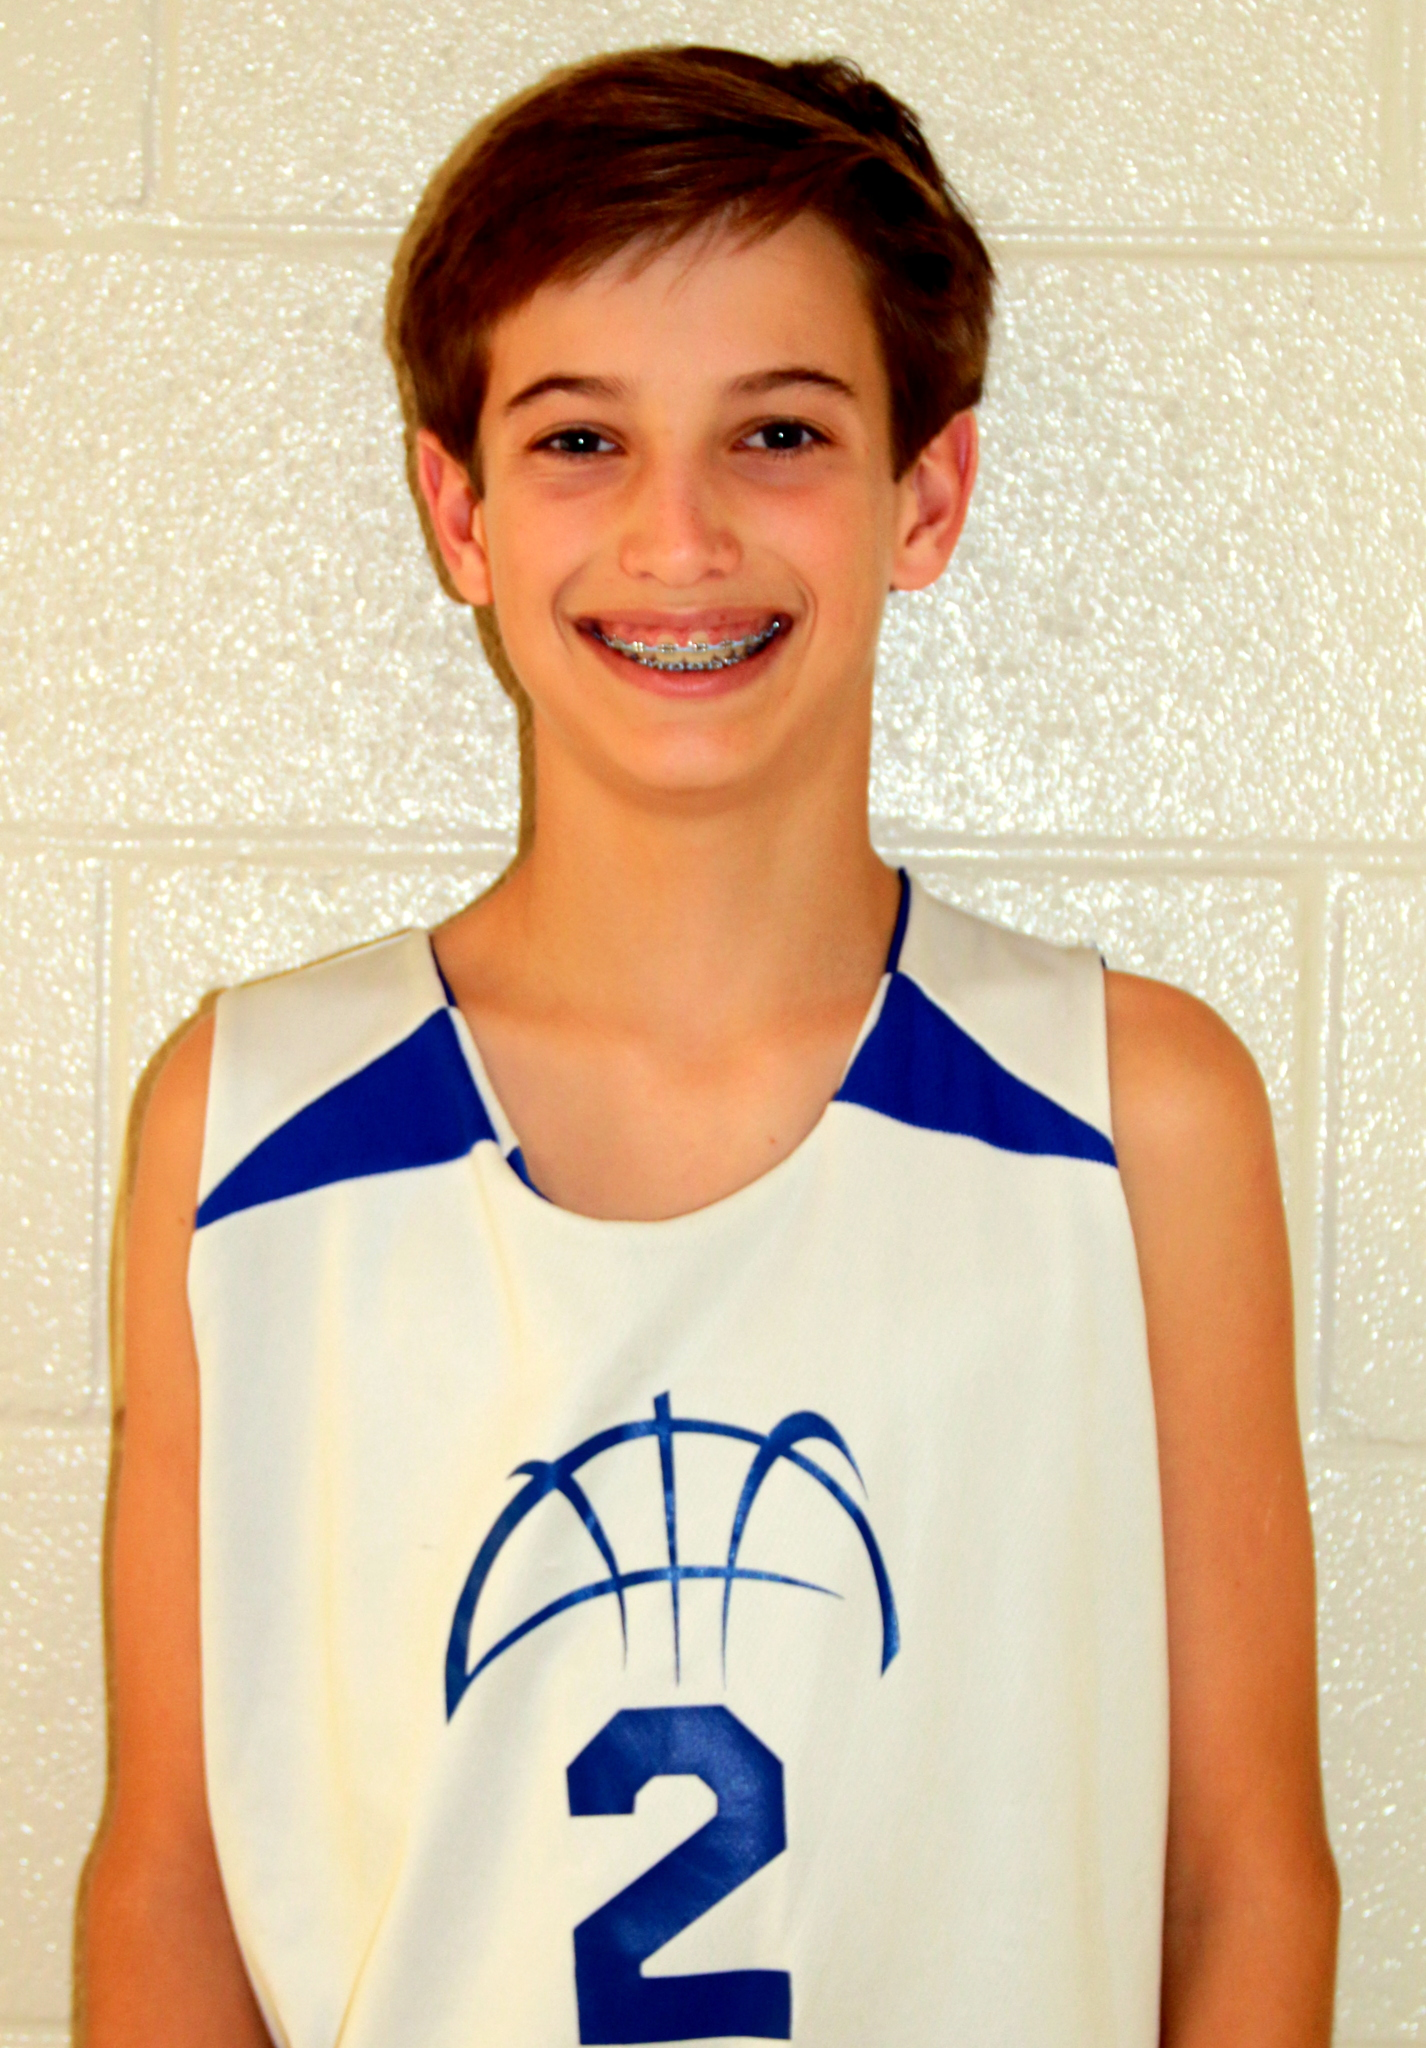 "WILSON BROOKES 7th grade boys  ""Wilson led the team in hustle, determination and scoring this week."" - Coach Wes Western"